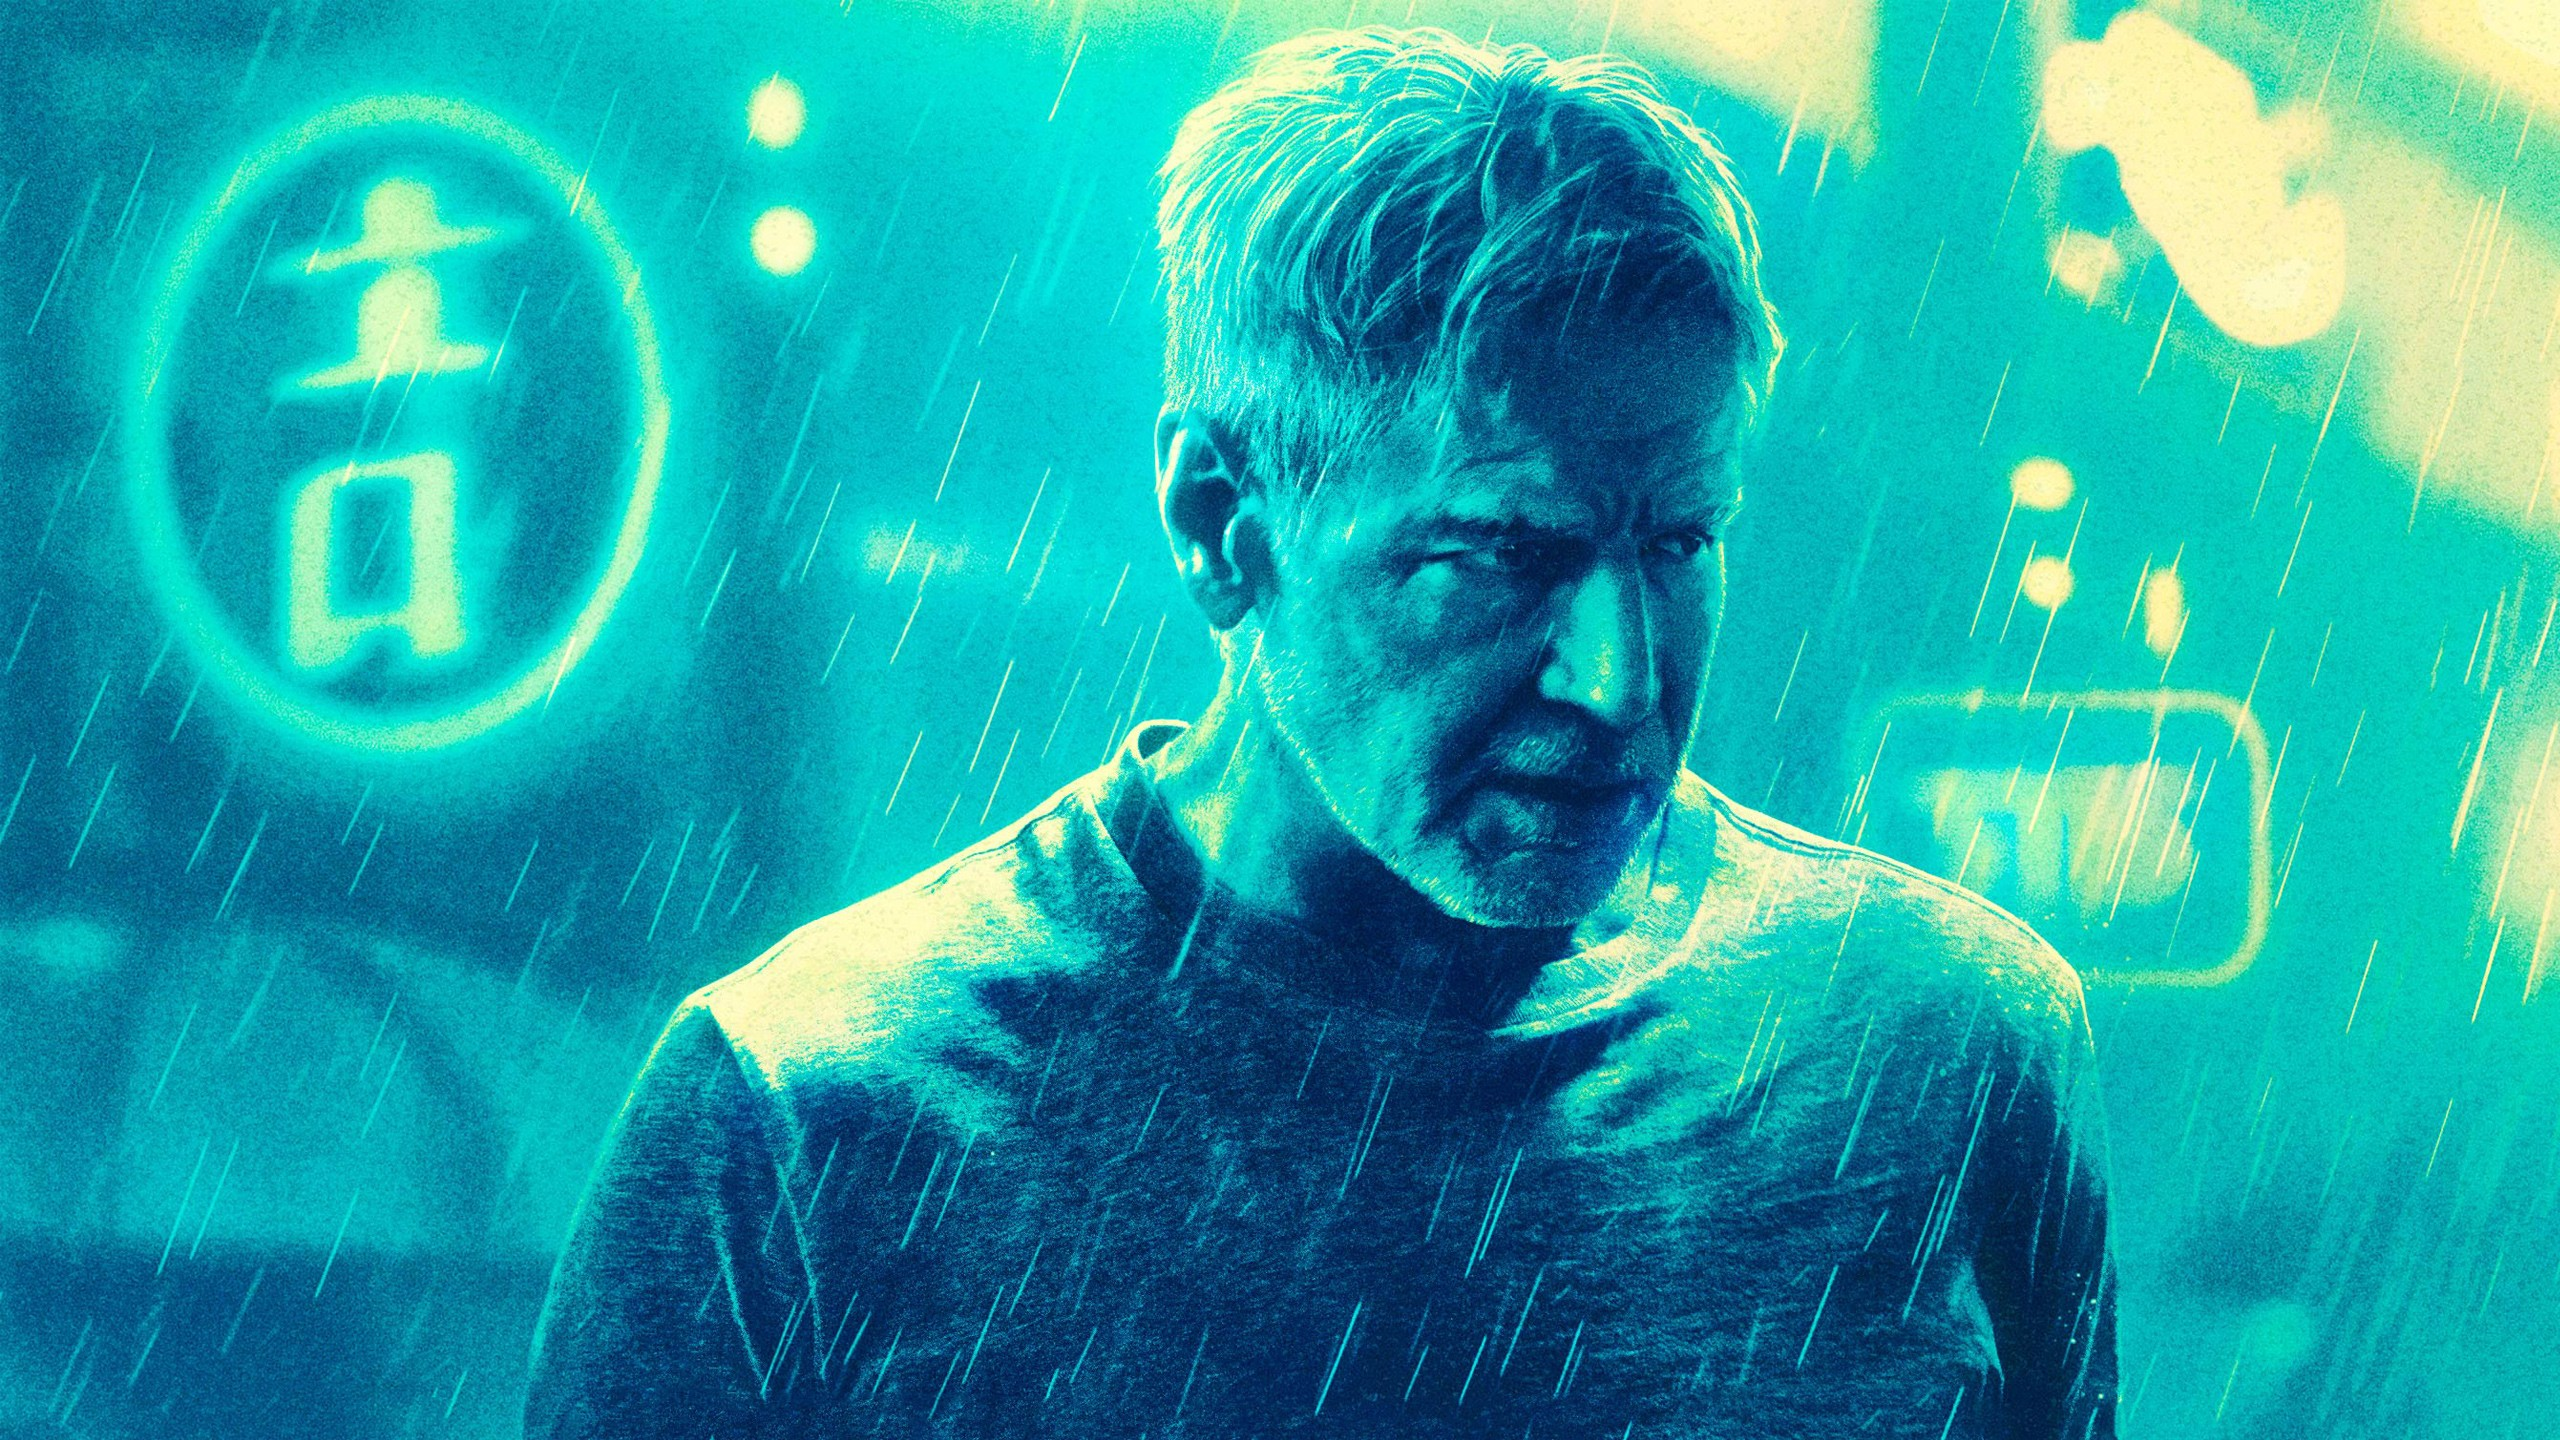 Expendables Wallpaper Iphone Harrison Ford Blade Runner 2049 Wallpapers Hd Wallpapers